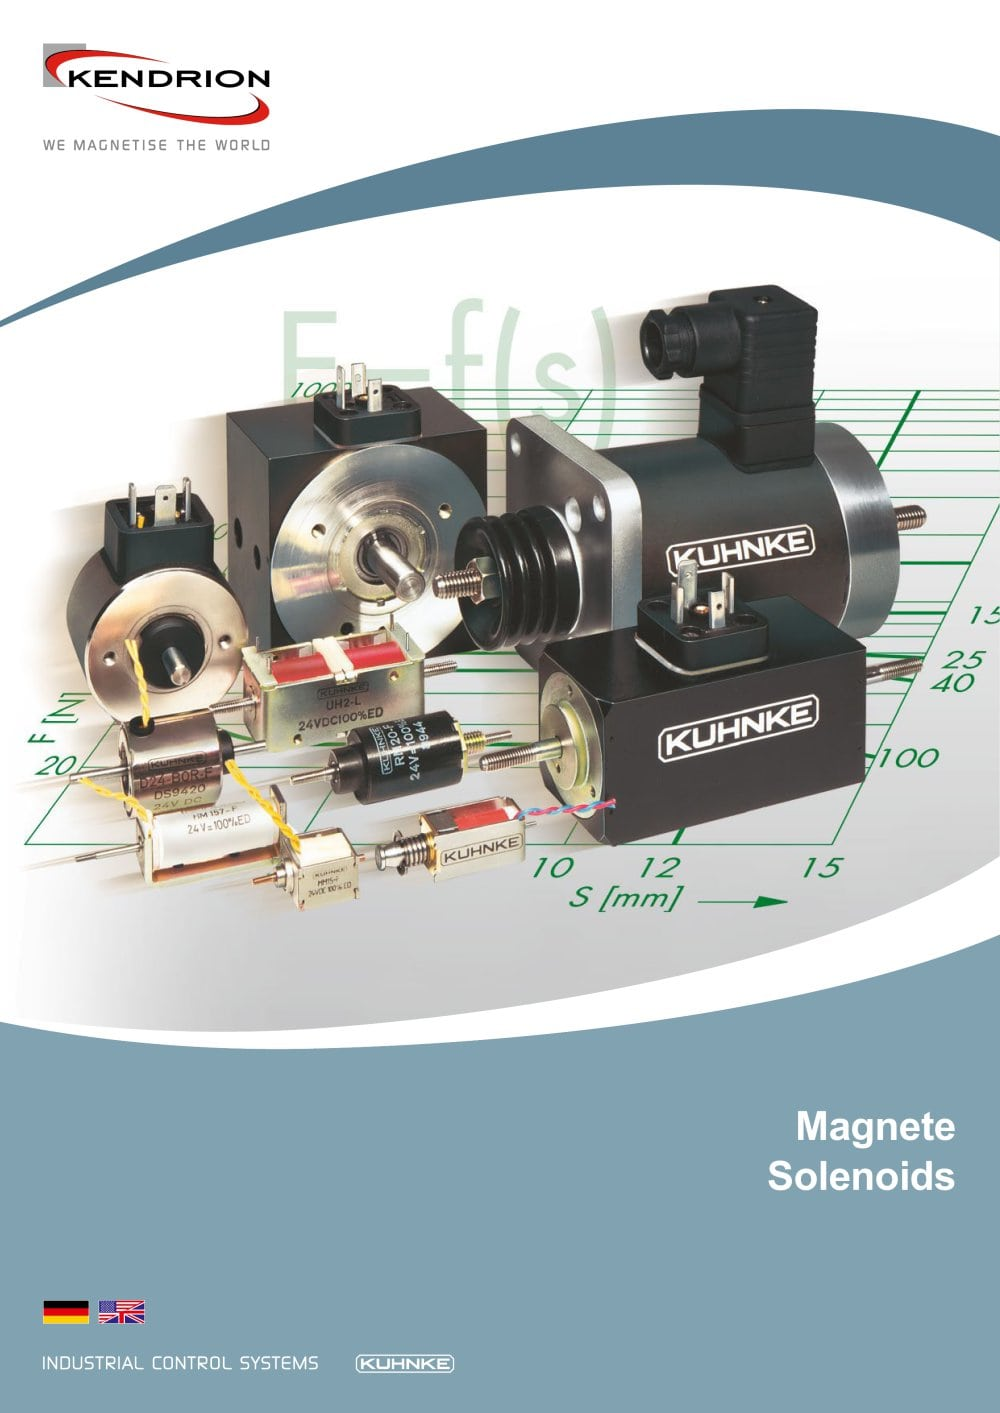 Magnete Solenoids - Kendrion Kuhnke Automation GmbH - PDF Catalogue ...